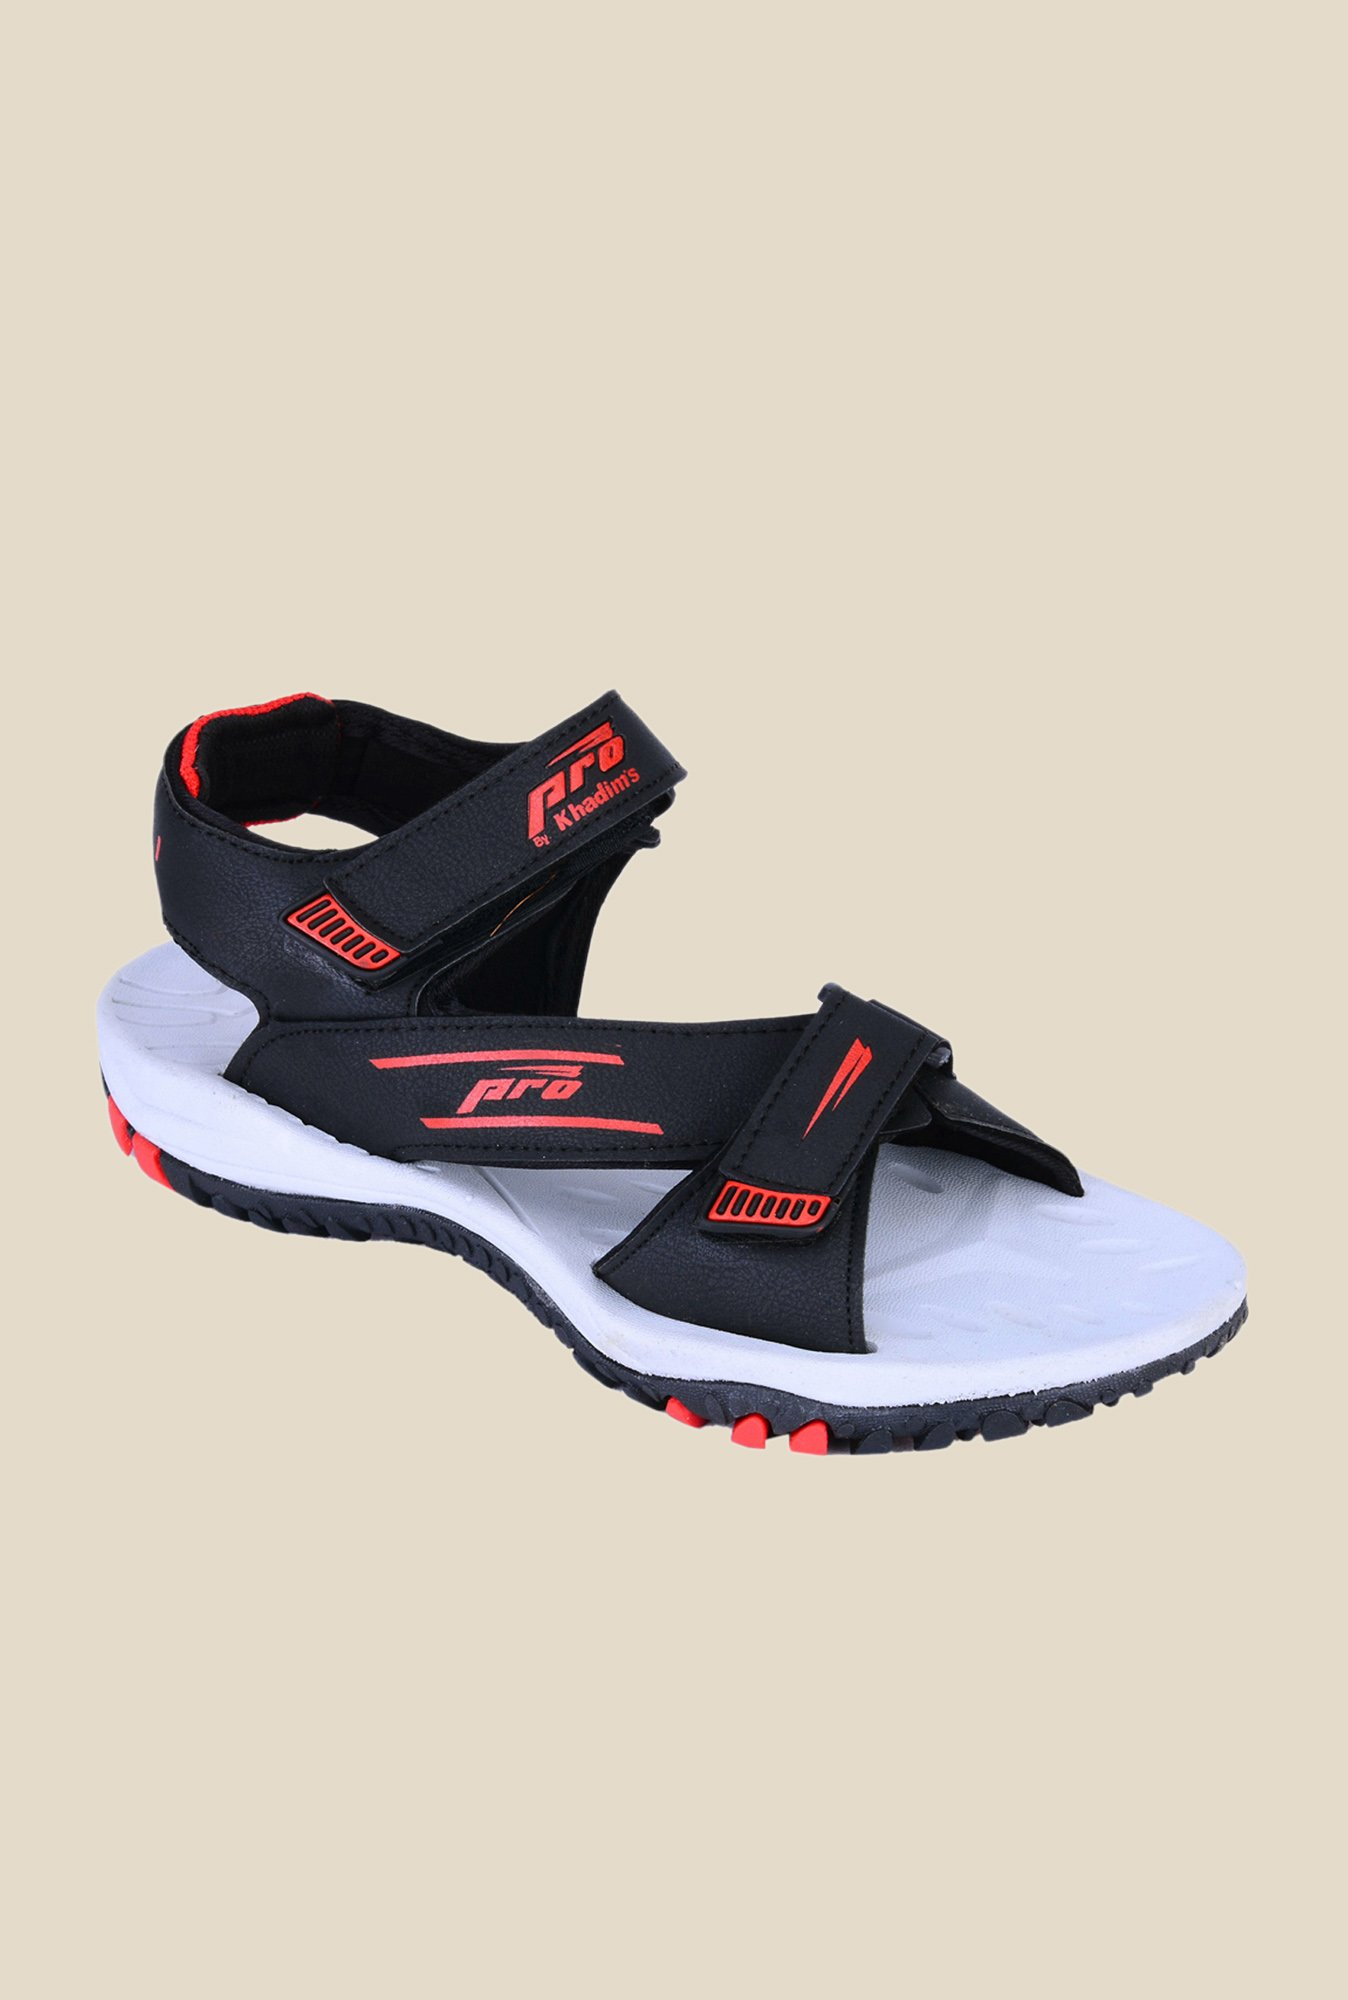 Khadim's Pro Black & Red Floater Sandals